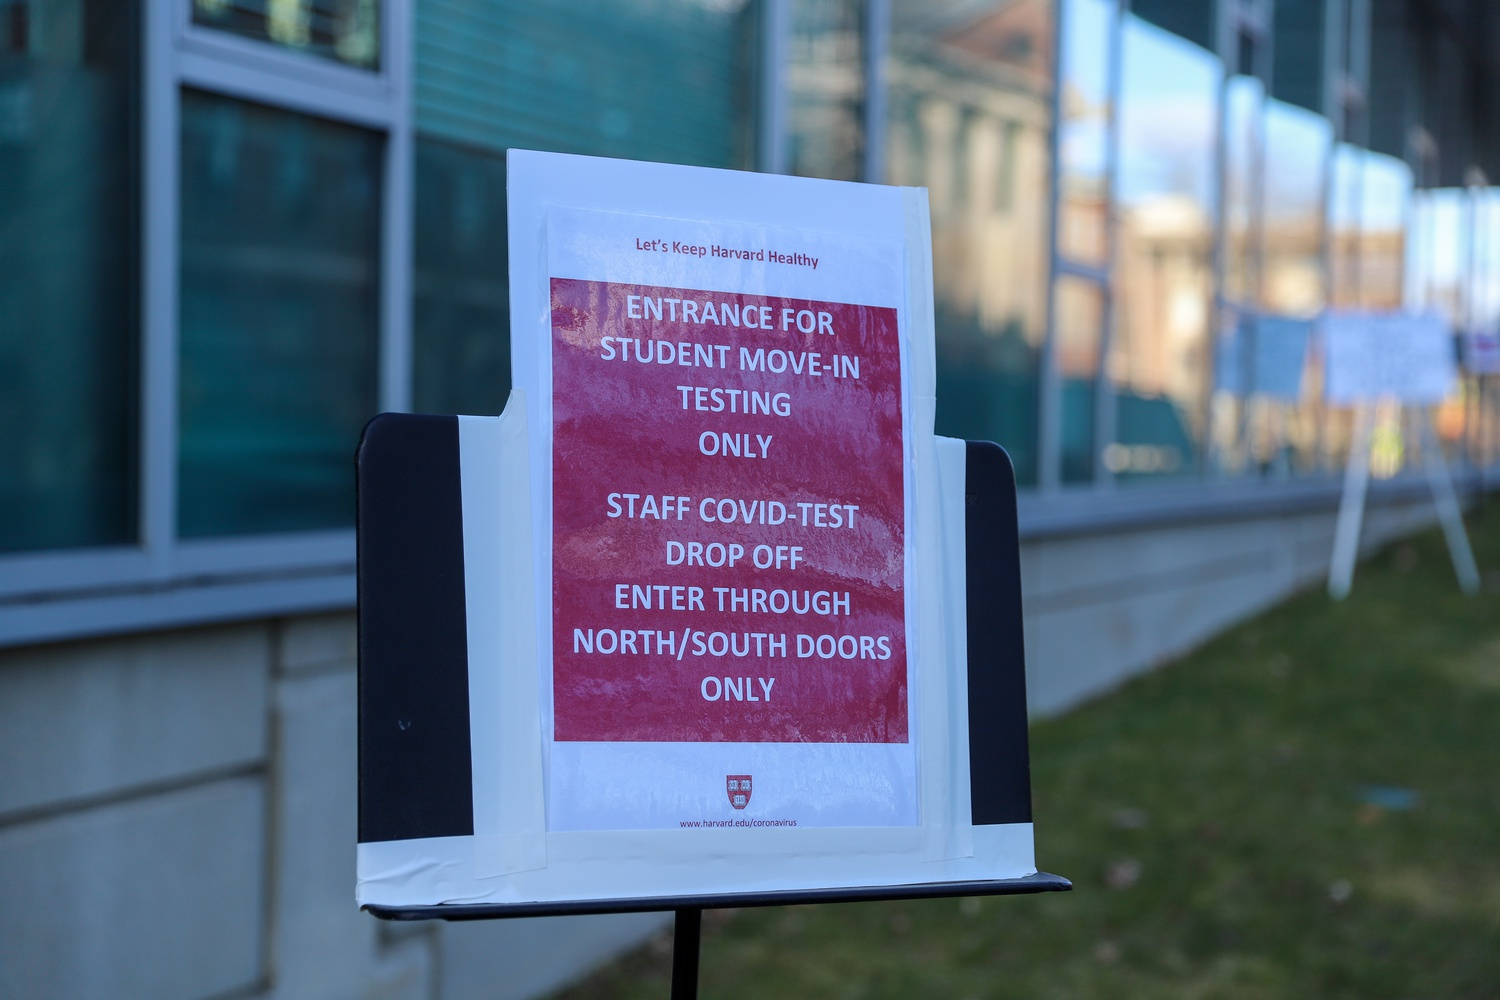 Students approved to return to campus had to take two coronavirus tests upon their arrival and remain in their rooms until receiving a negative result.